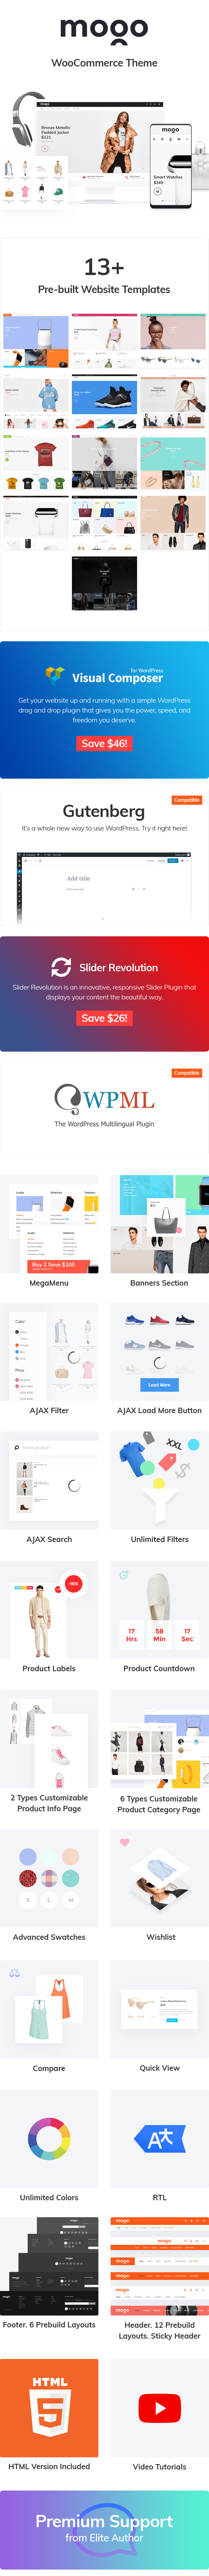 Mogo - Fastest Fashion WooCommerce WordPress Theme - 5